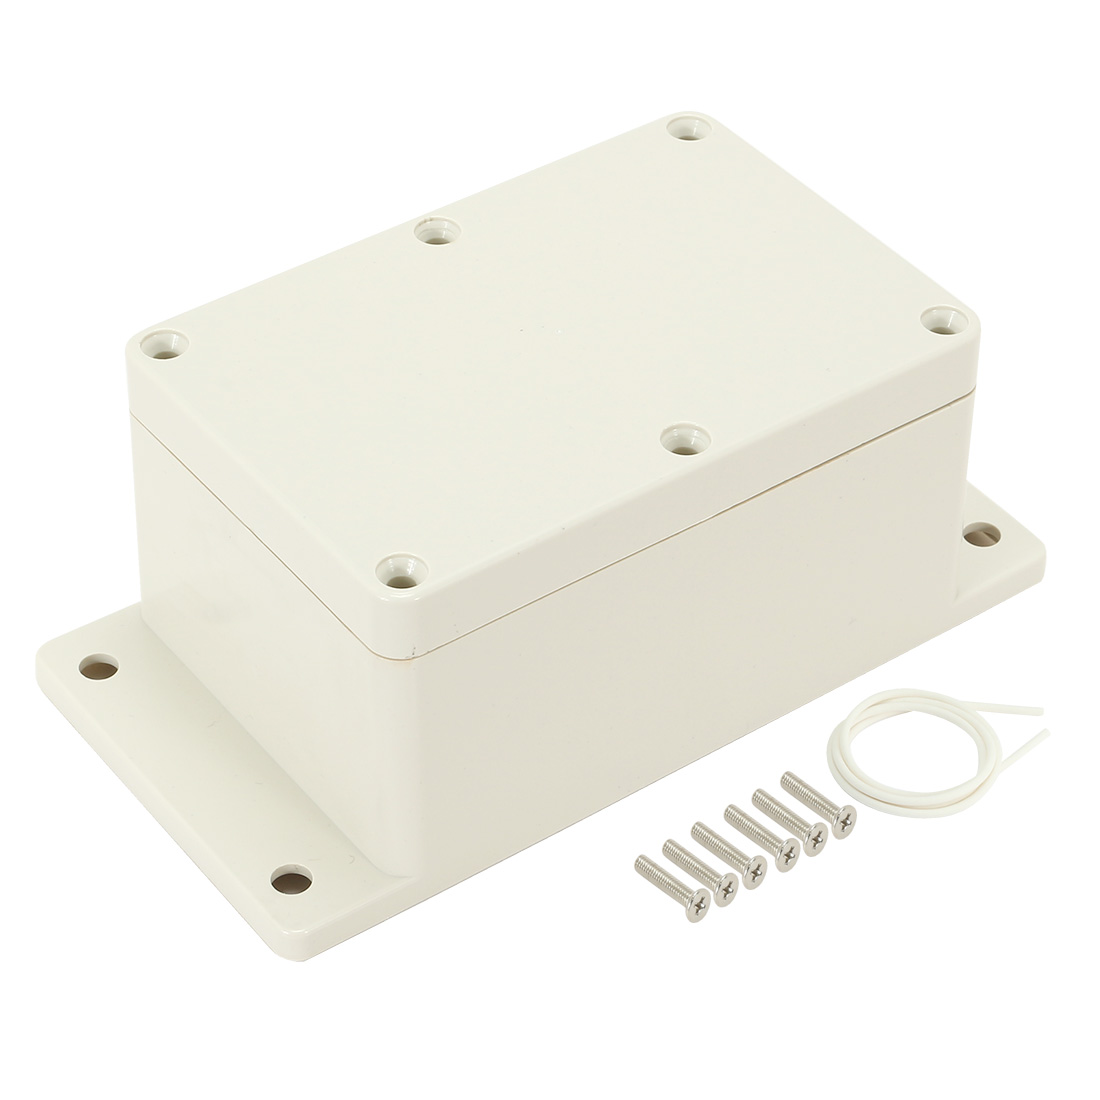 """4.7""""x3.2""""x2.56""""(120mmx81mmx65mm) ABS Junction Box Universal Electric Project Enclosure"""